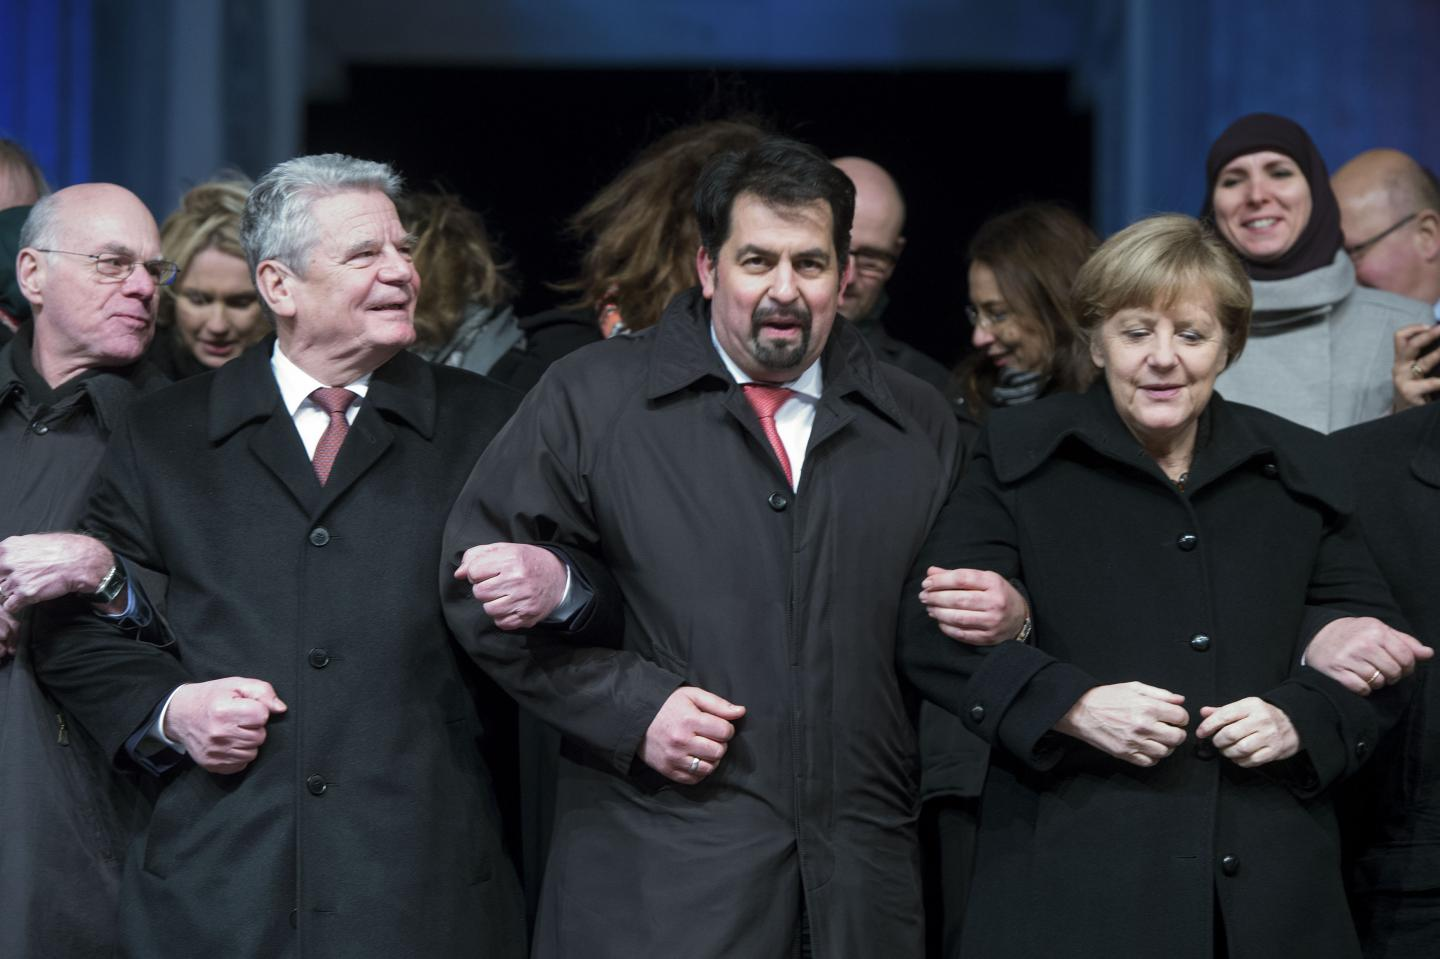 Chairman of the Central Council of Muslims in Germany Aiman Mazyek and German Chancellor Angela Merkel link arms with other officials during a vigil organised by Muslim groups for the victims of a shooting by gunmen at the offices of the French satirical weekly newspaper Charlie Hebdo, in front of the Brandenburg Gate in Berlin January 13, 2015. Mazyek has recently said that discrimination against Jews or any race is a sin in Islam.